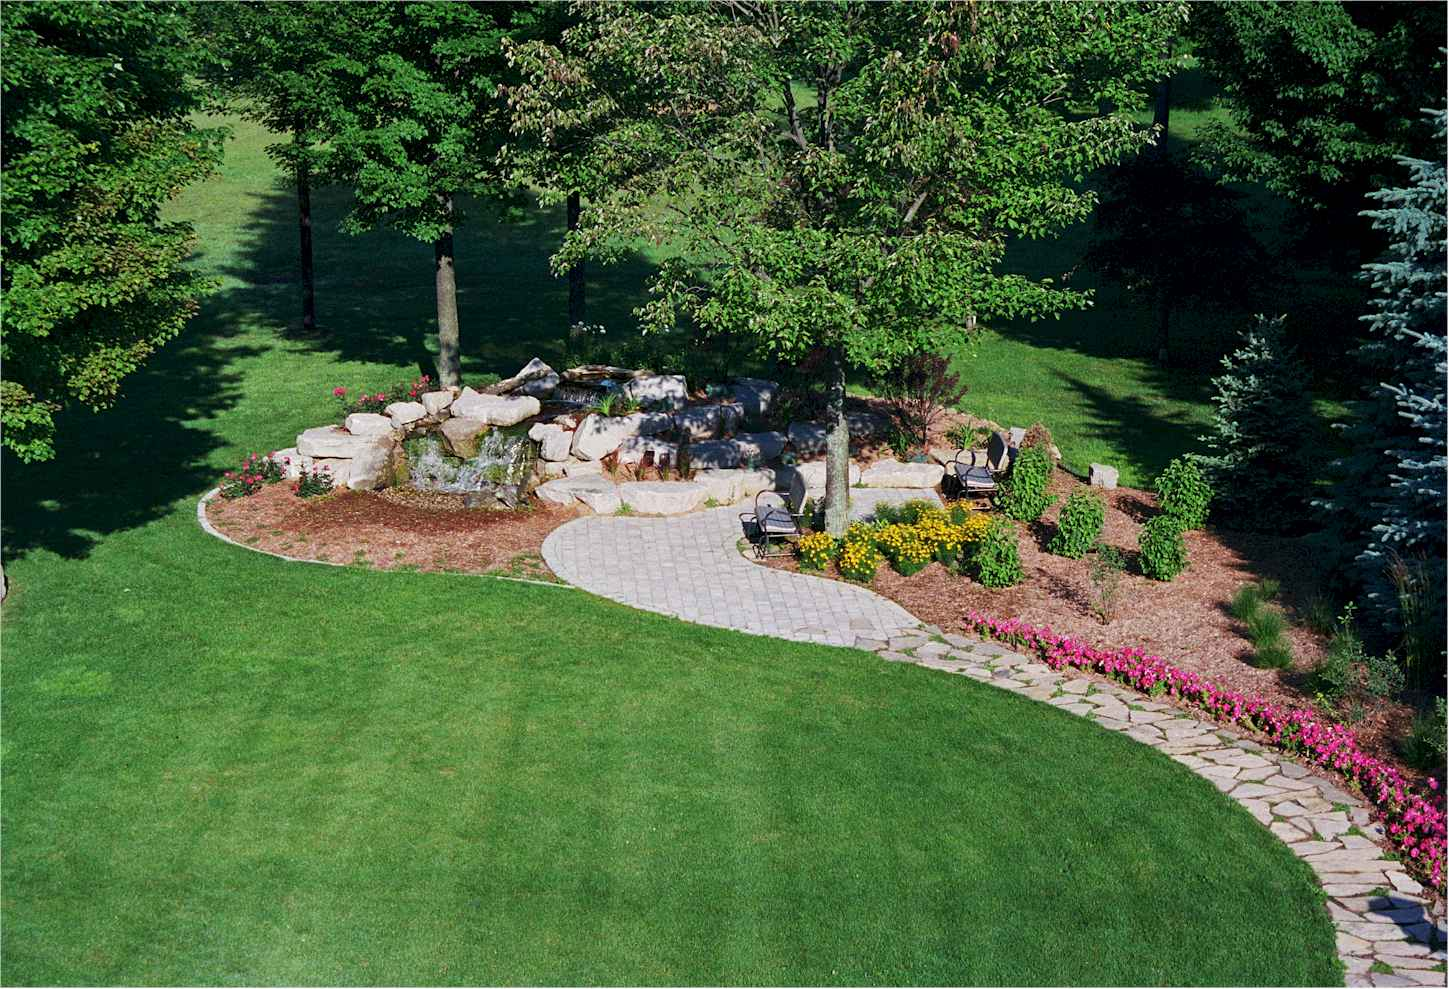 5 landscaping ideas to wow the neighbors for Garden lawn ideas